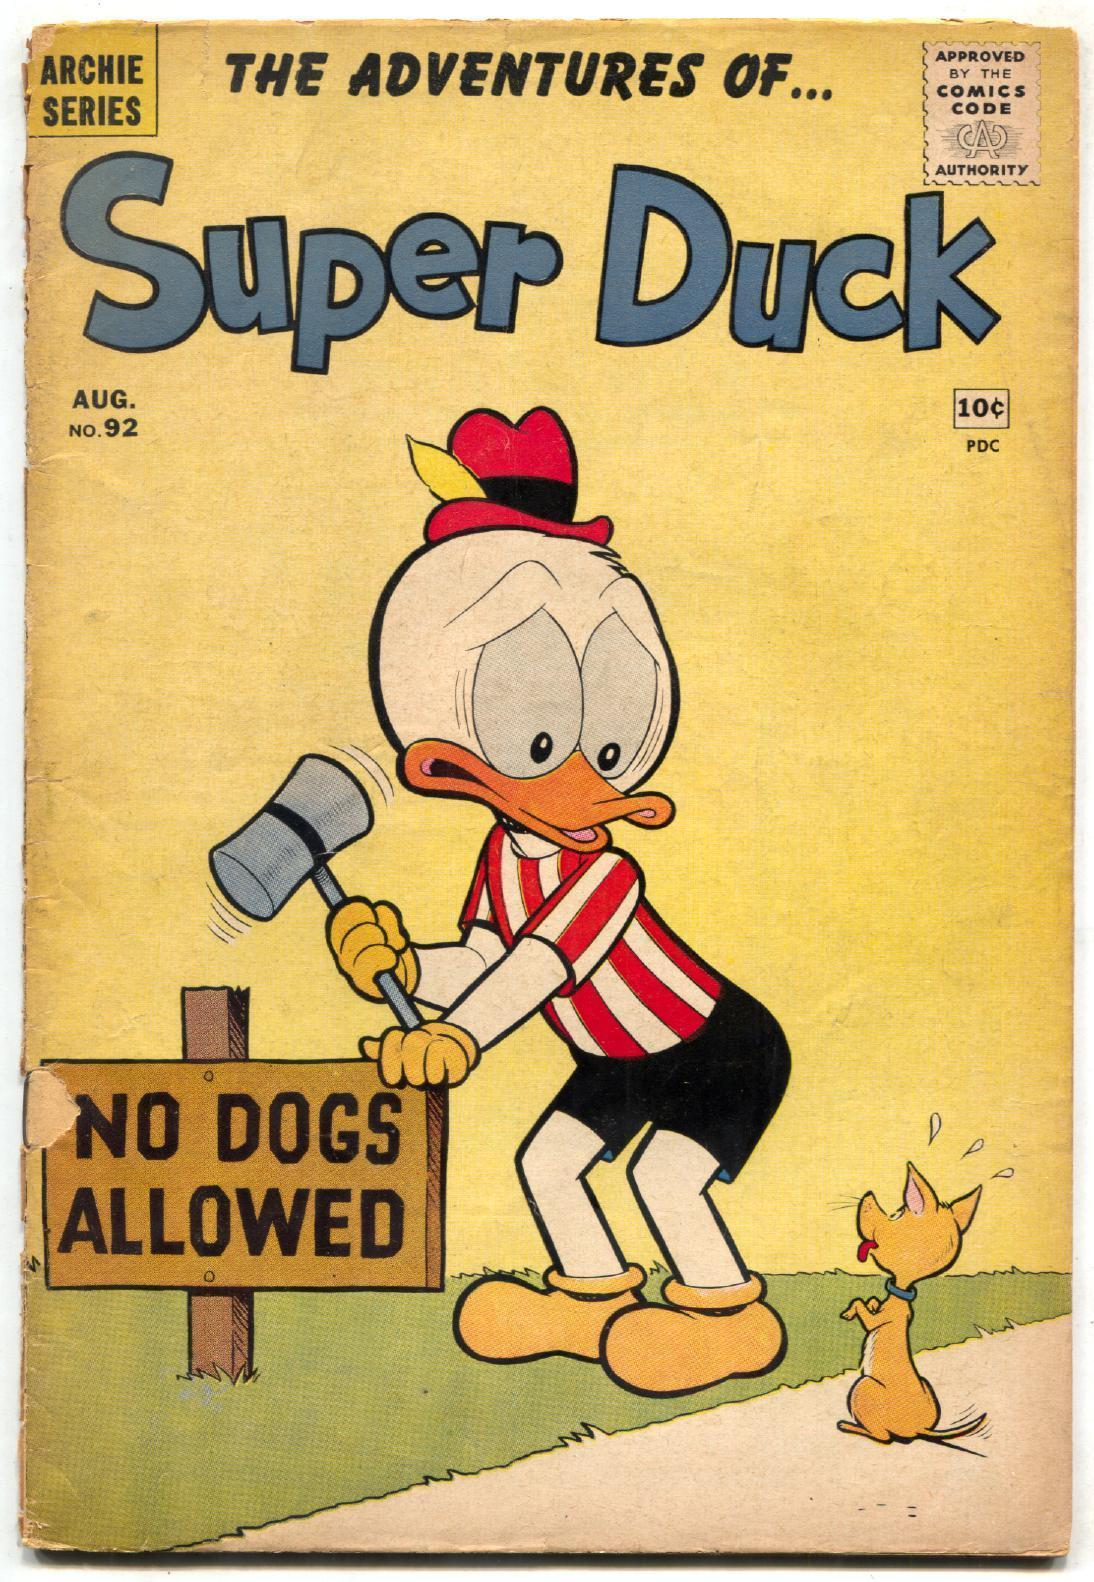 Super Duck #92 1960- Archie comics- Humor G/VG